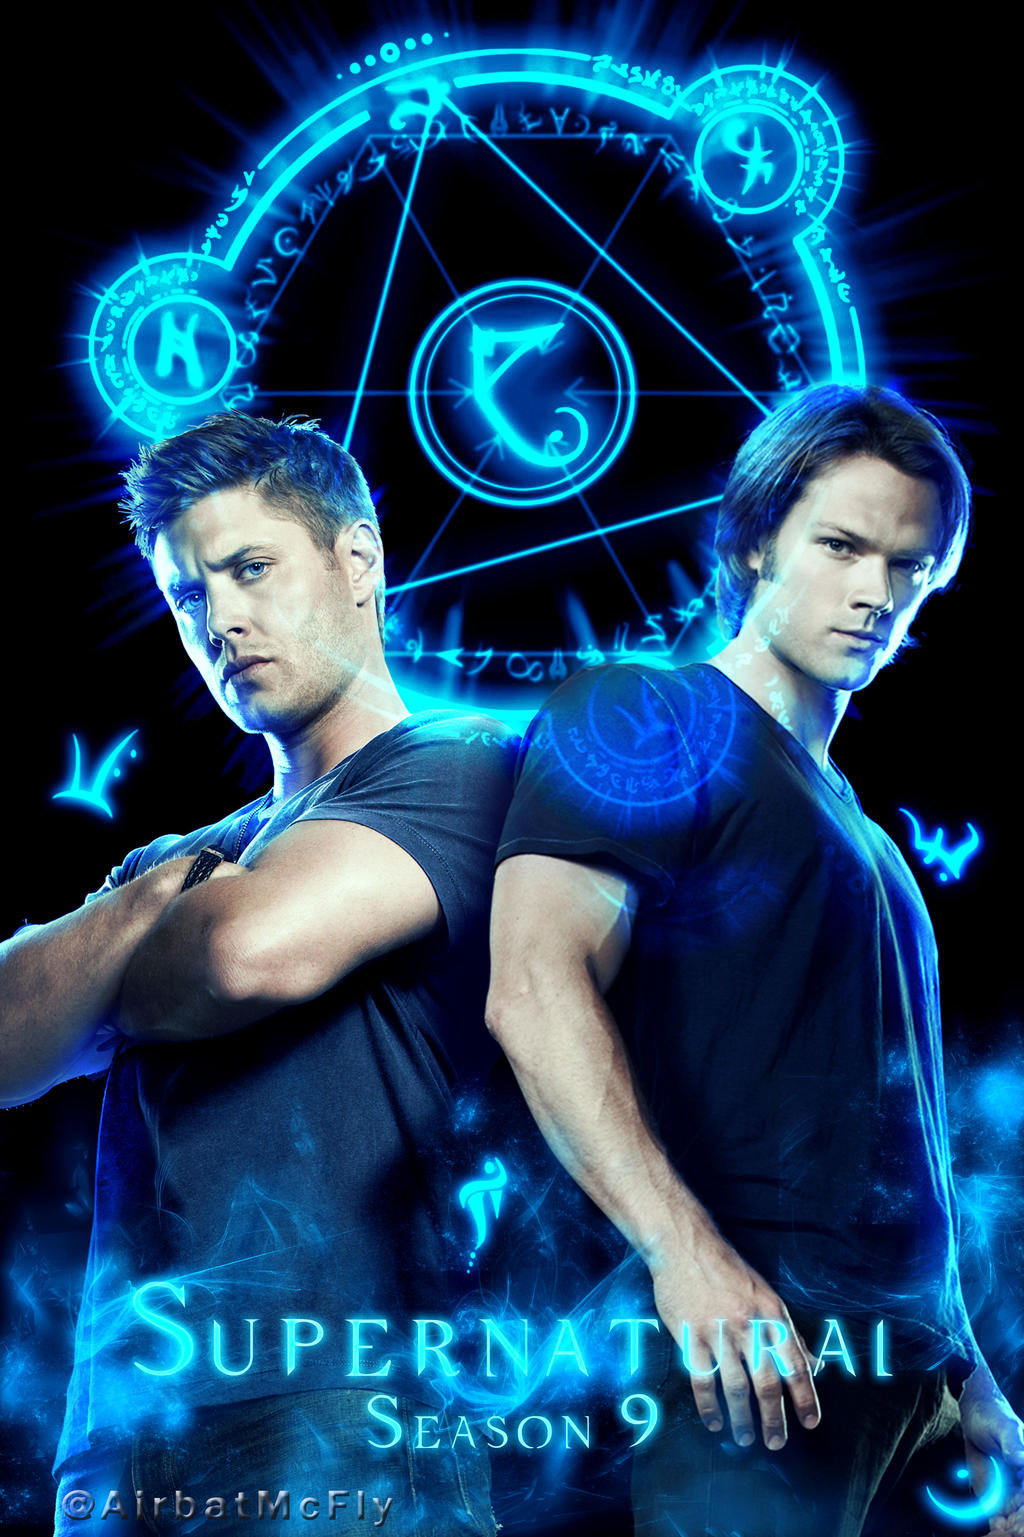 Supernatural - Season 9 by AirbatMcFly on DeviantArt